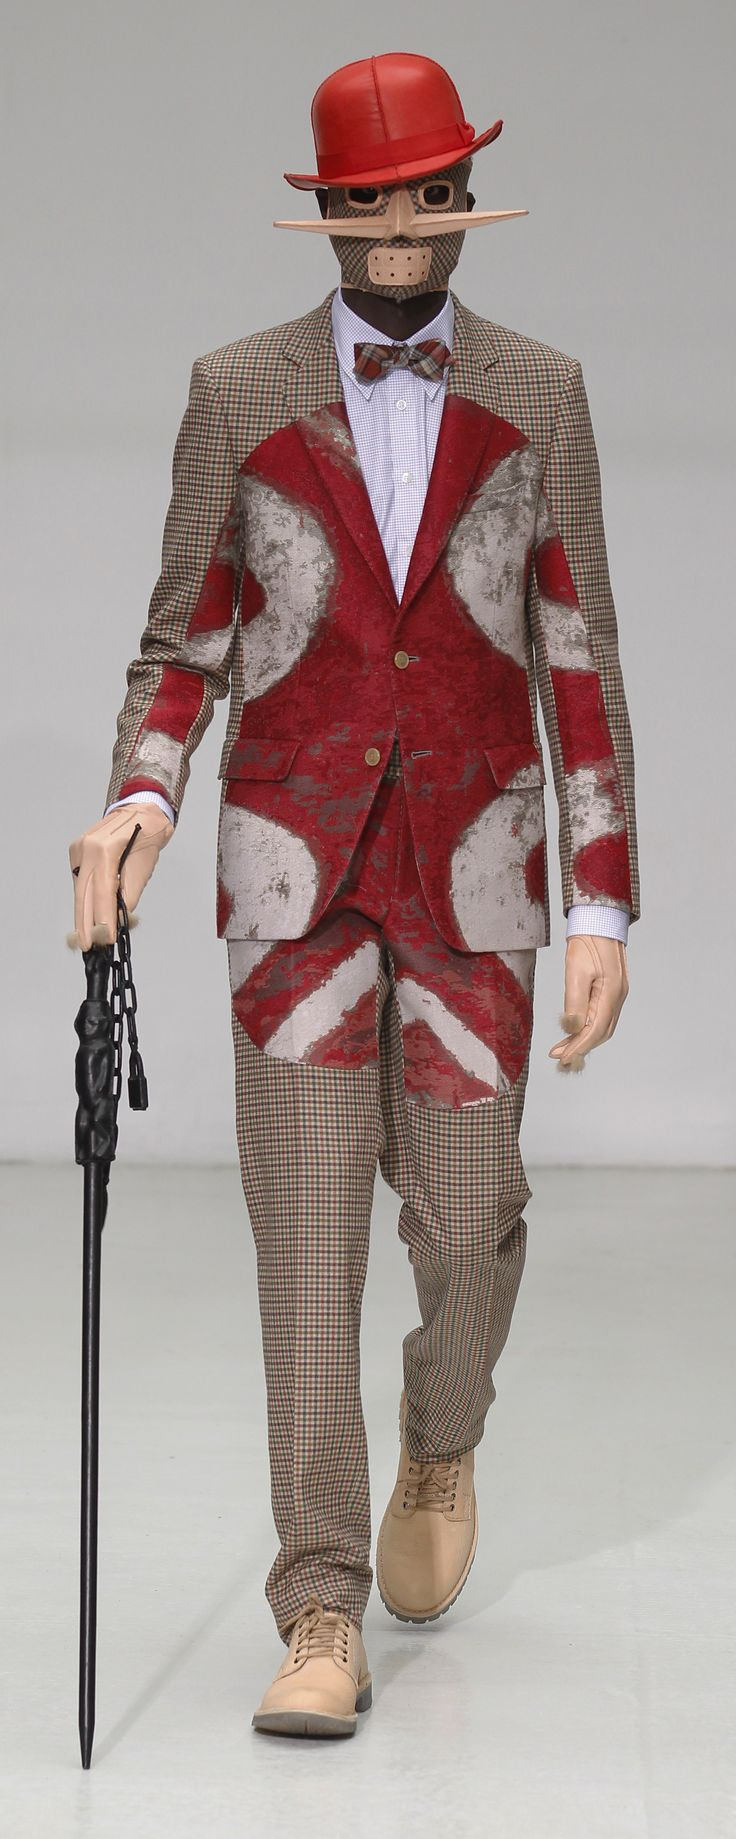 Not just straight lines and angles have to be used, even with the tartan pattern playing a large role in my design concept I can challenge the stereotypes and bring in curves to the lines and panels it sits within // Walter van Beirendonck aw 12/13